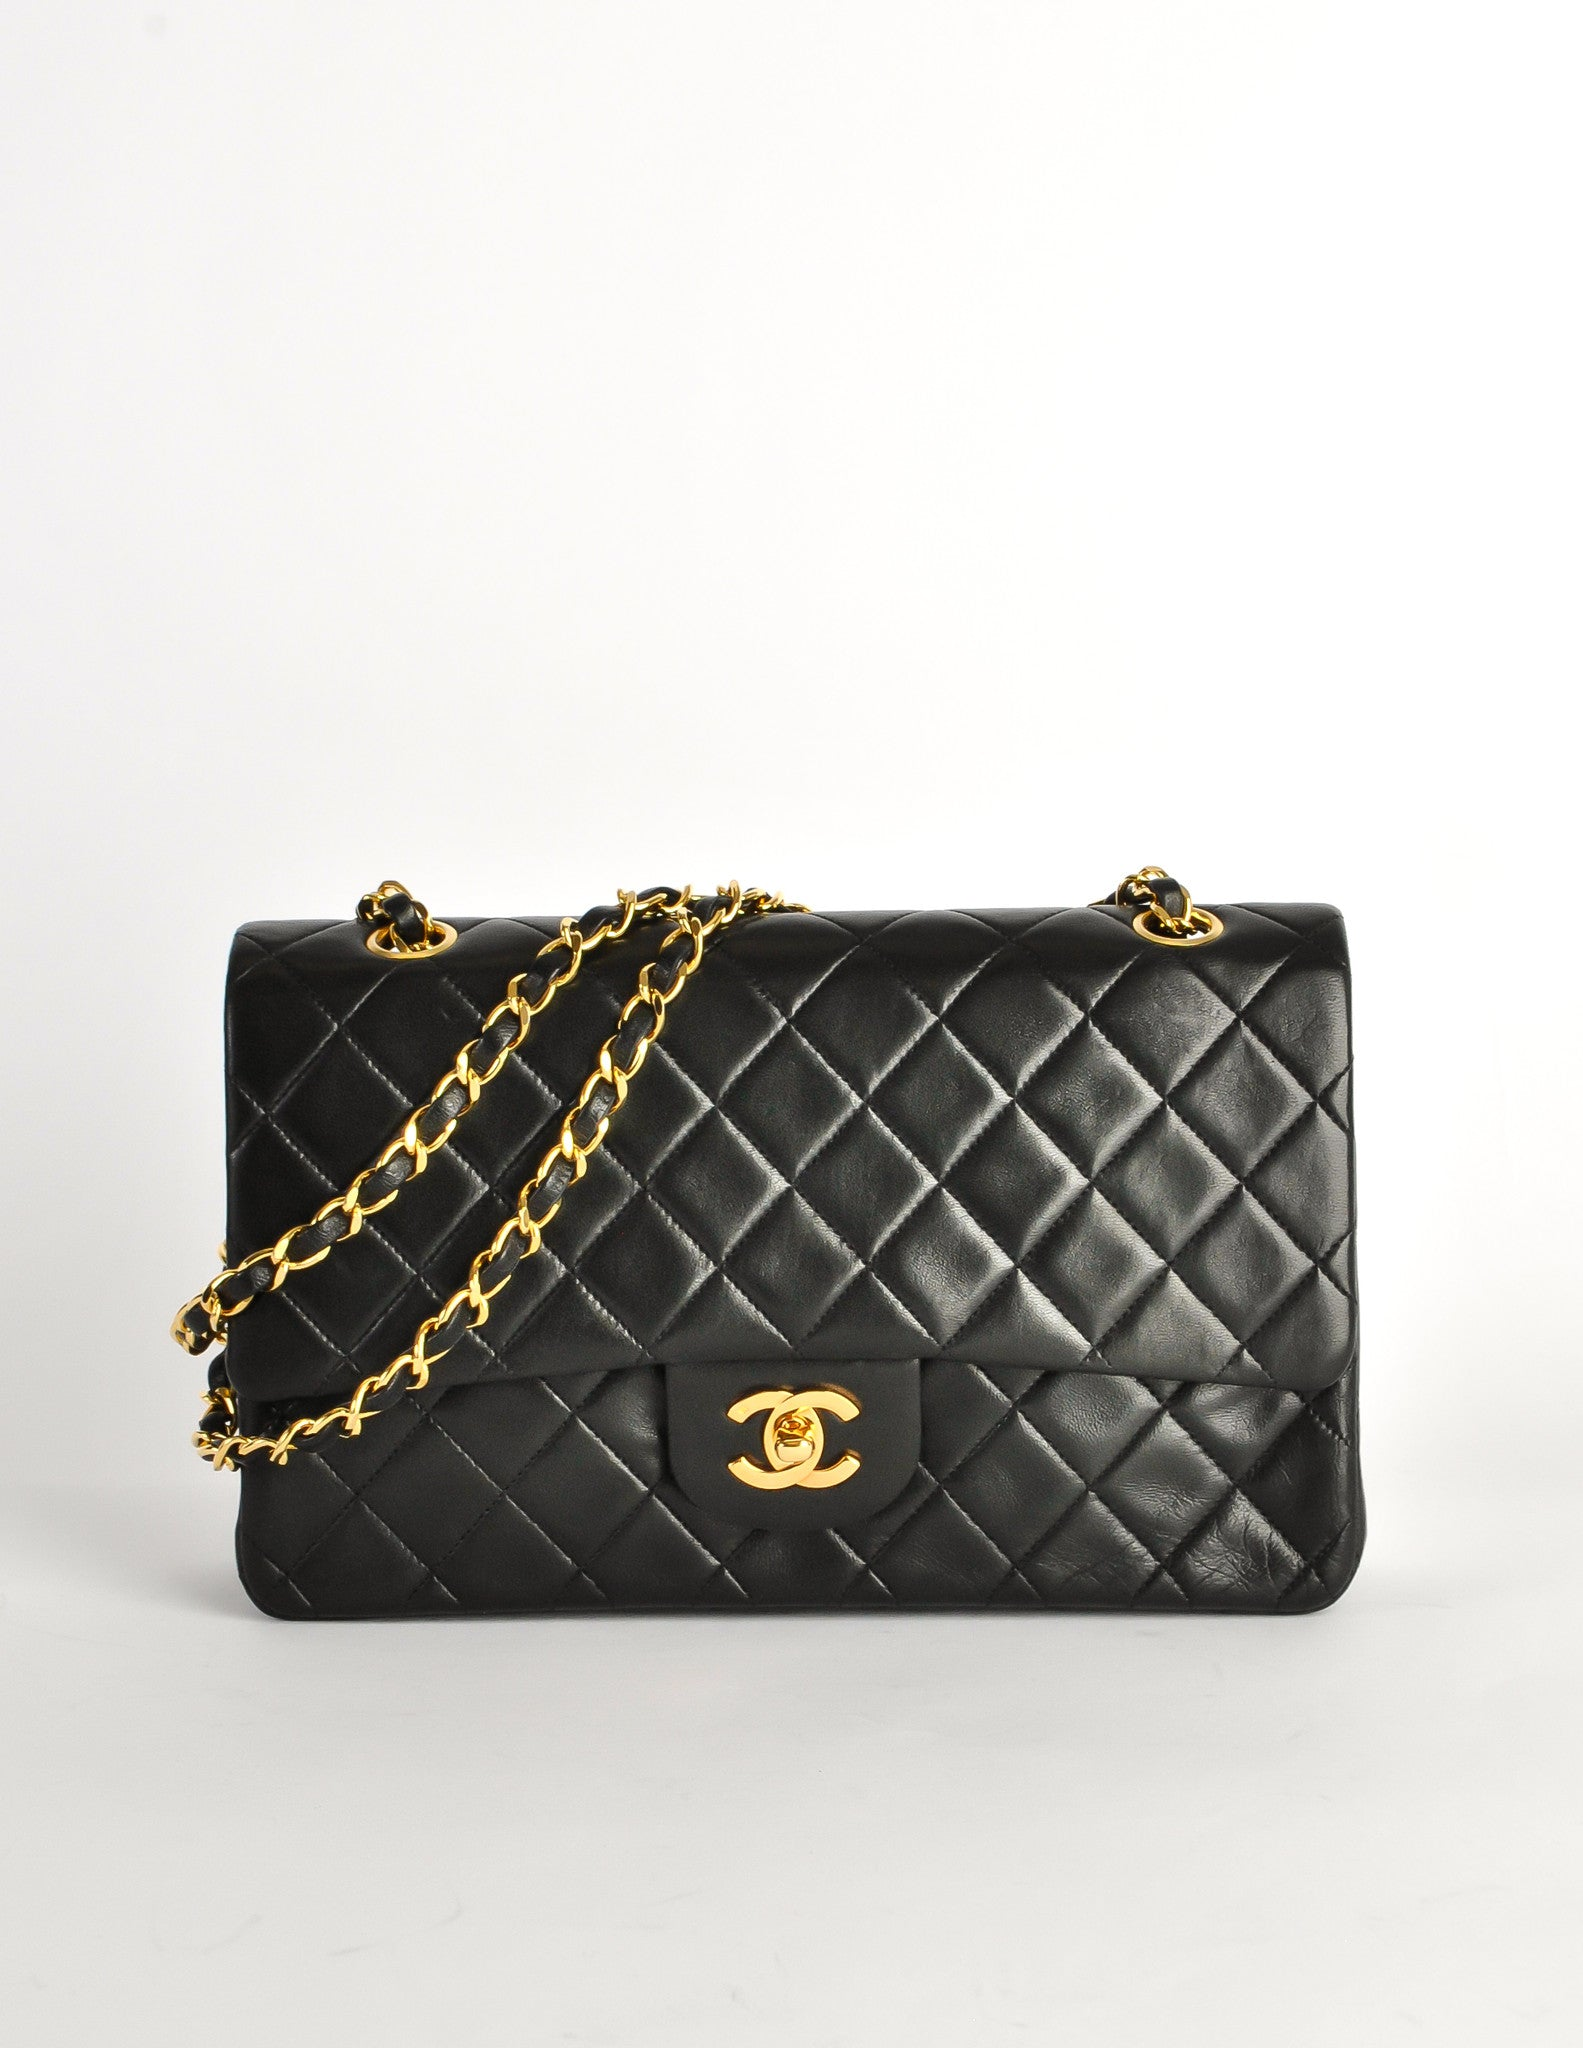 7a5a337266f4 Chanel Vintage Black Quilted Lambskin Leather Classic Double Flap Bag -  Amarcord Vintage Fashion - 2